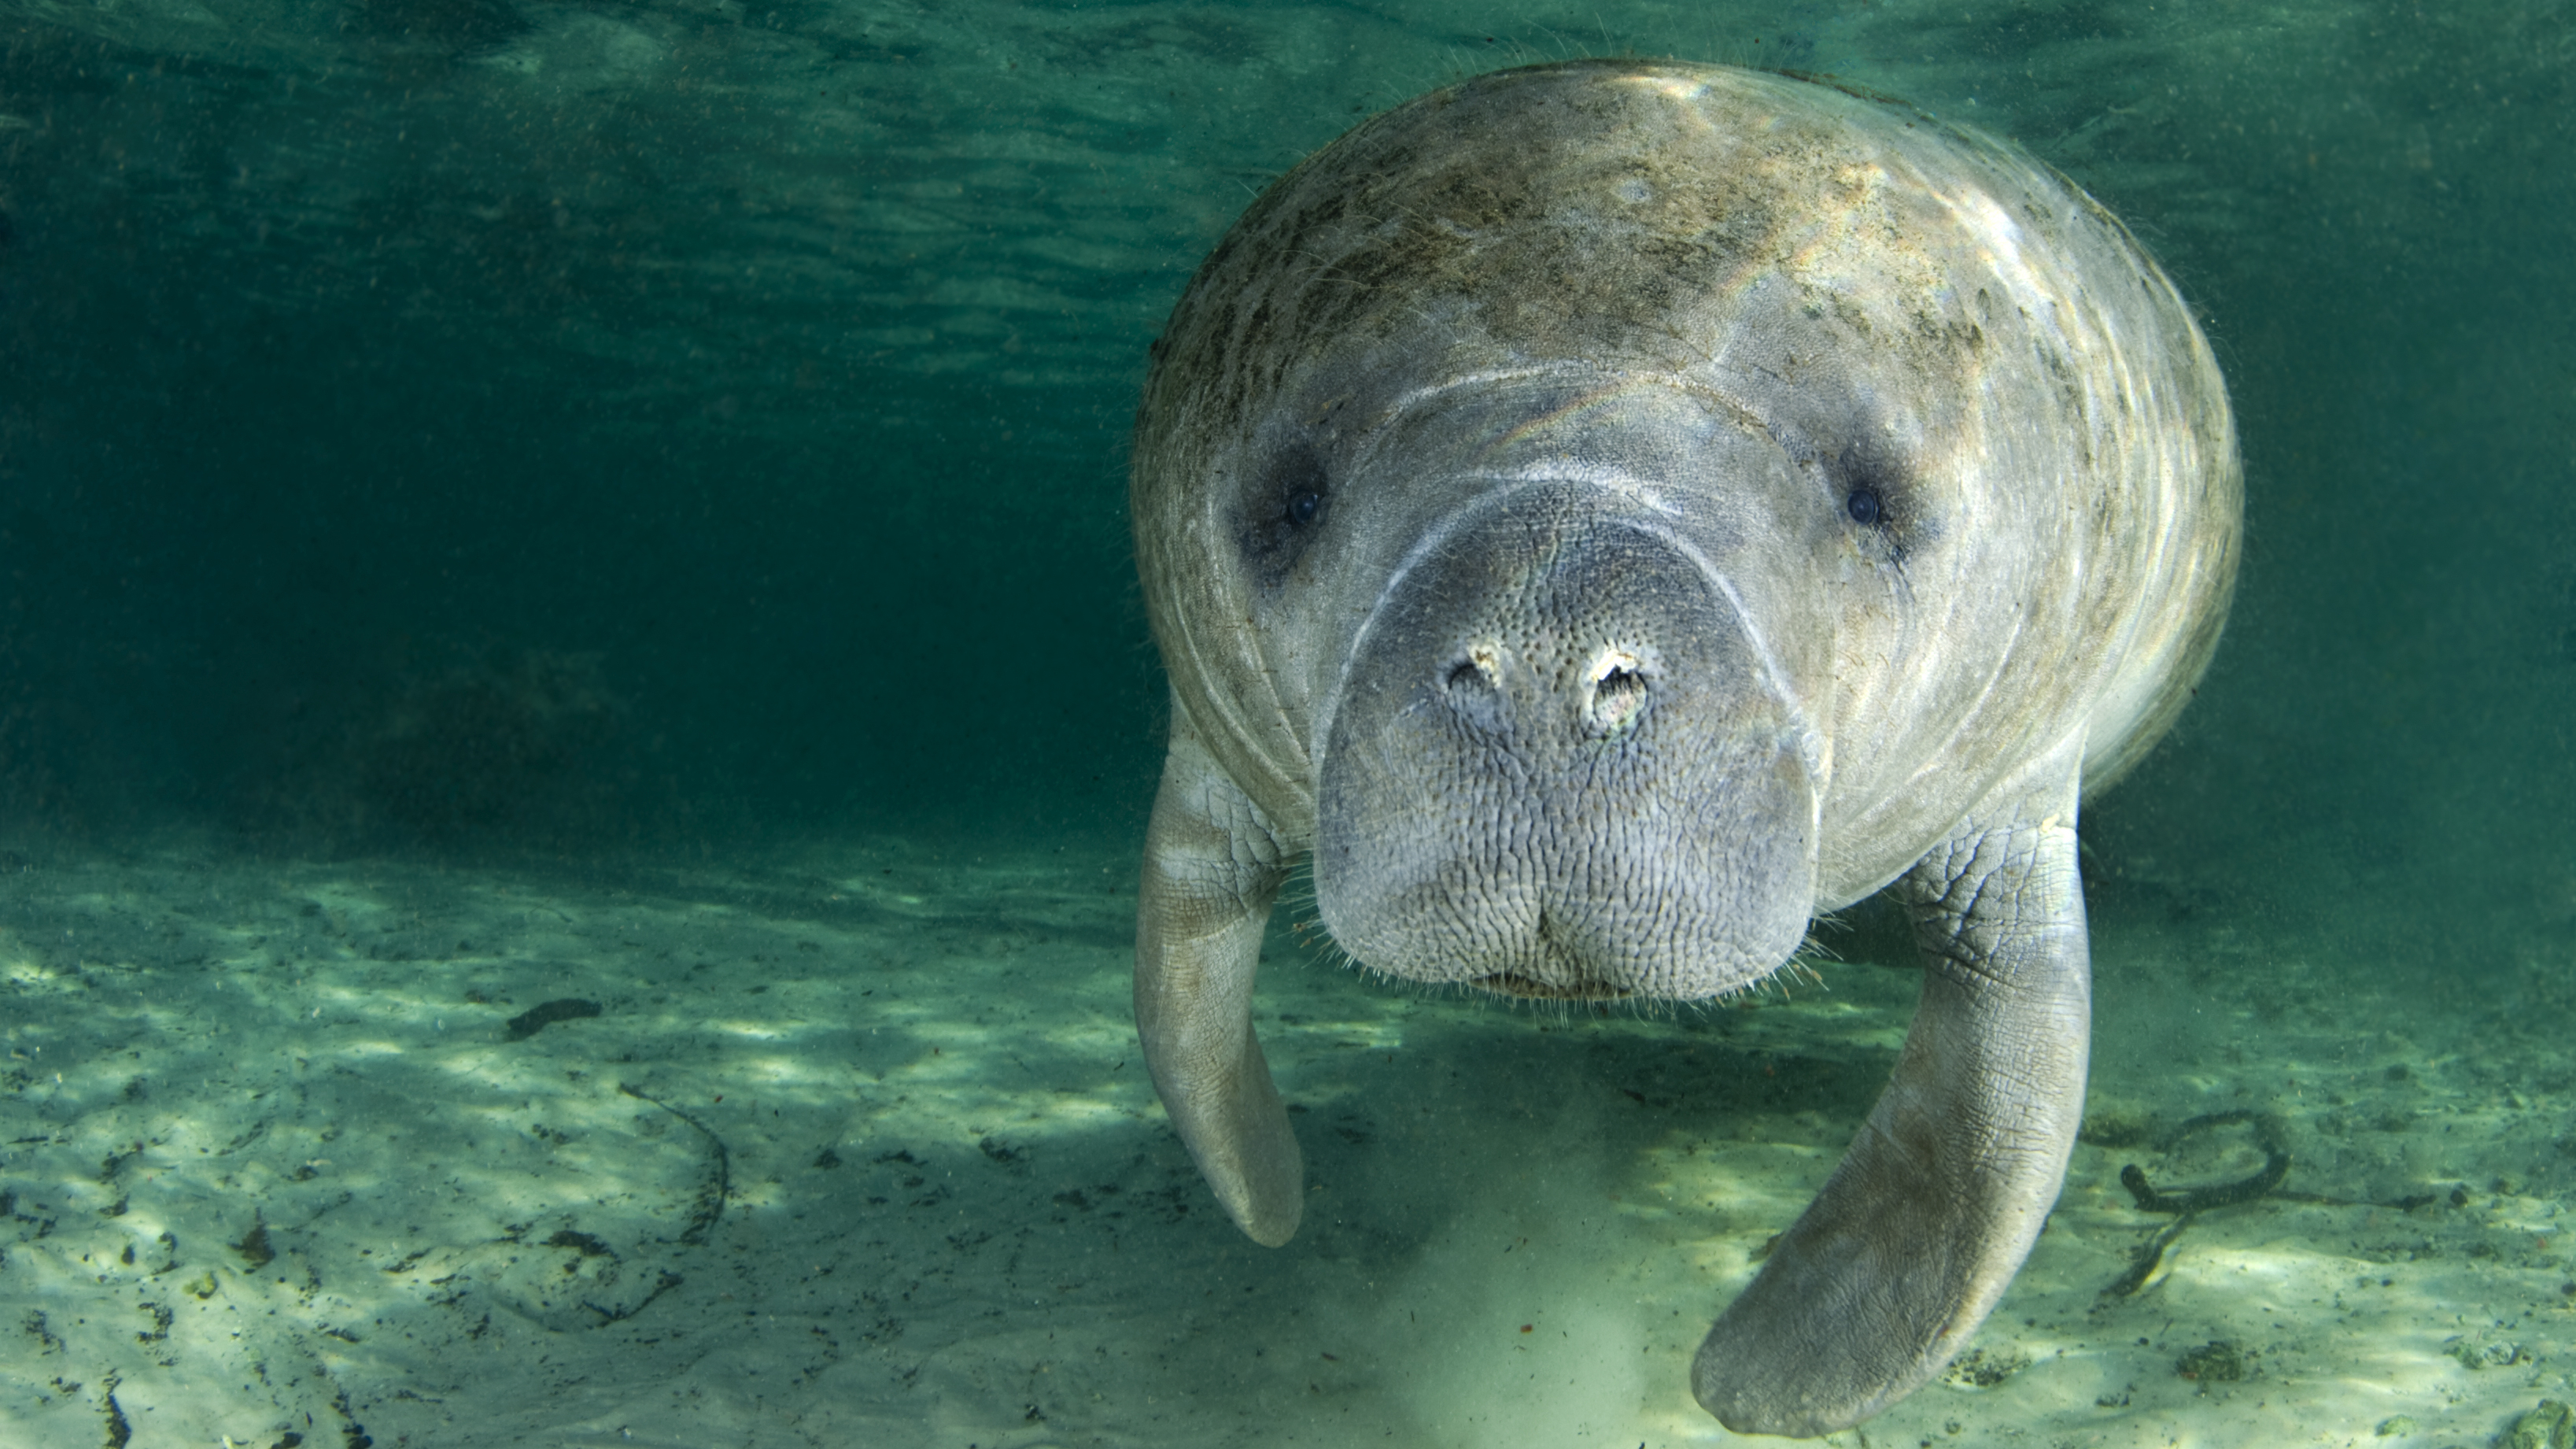 Florida's Manatees: Big, Beloved And Bitterly Contested